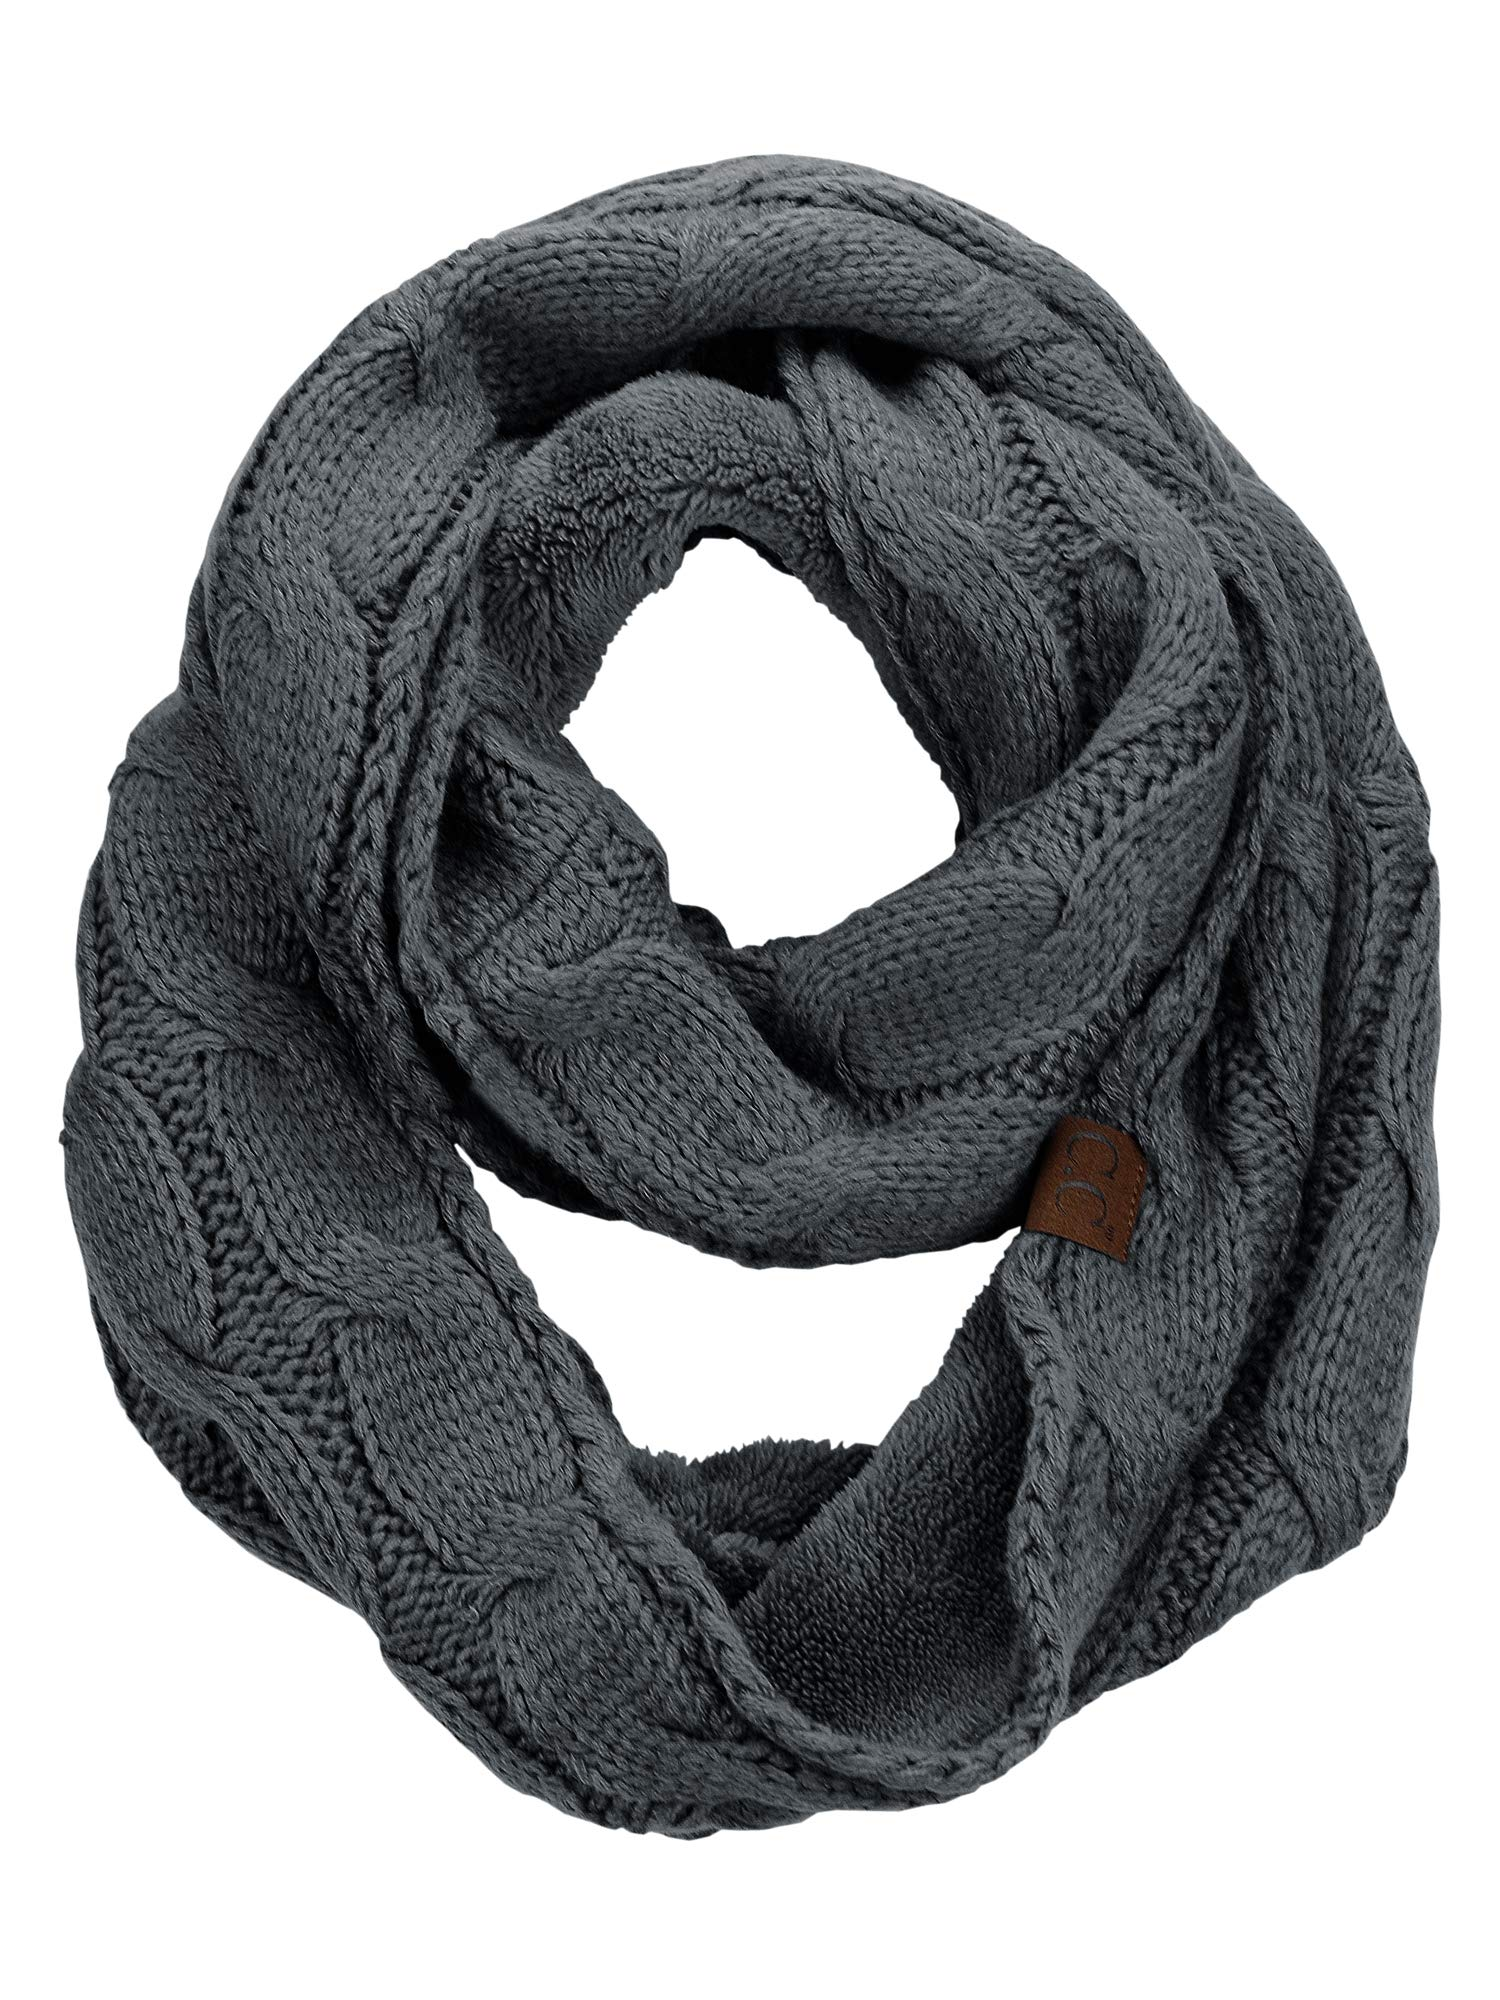 C.C Women's Winter Cable Knit Sherpa Lined Warm Infinity Pullover Scarf, Dark Melange Grey